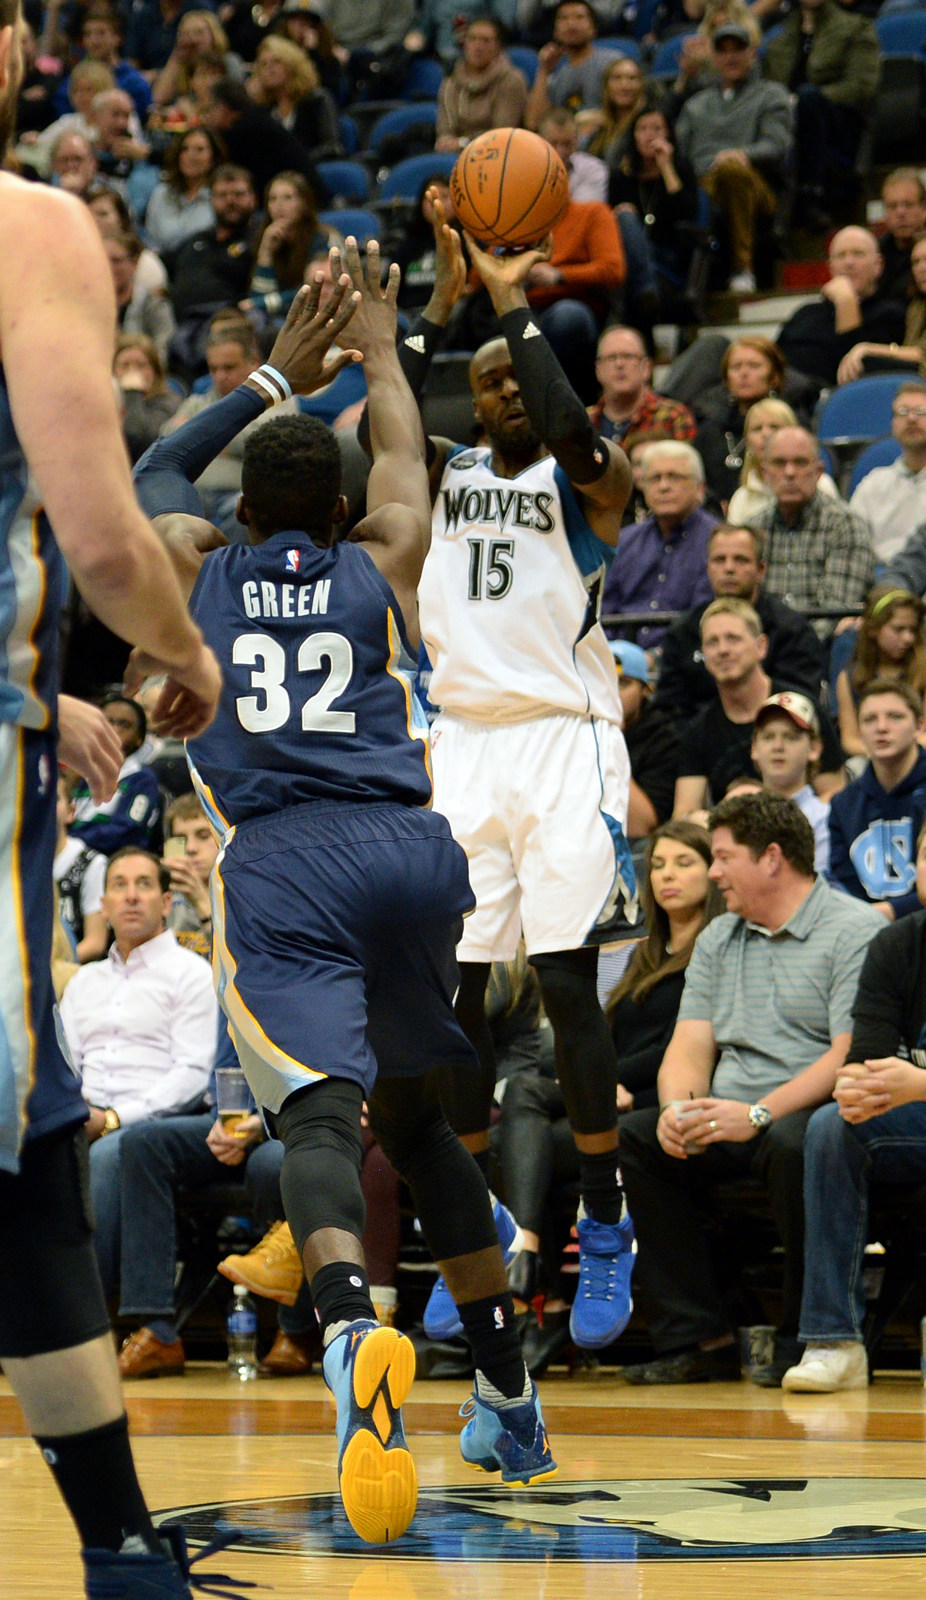 . Minnesota Timberwolves forward Shabazz Muhammad fires a three against the Memphis Grizzlies in the third quarter at the Target Center on Saturday, January 23, 2016. The Timberwolves beat the Memphis Grizzlies, 106-101. (Pioneer Press: John Autey)